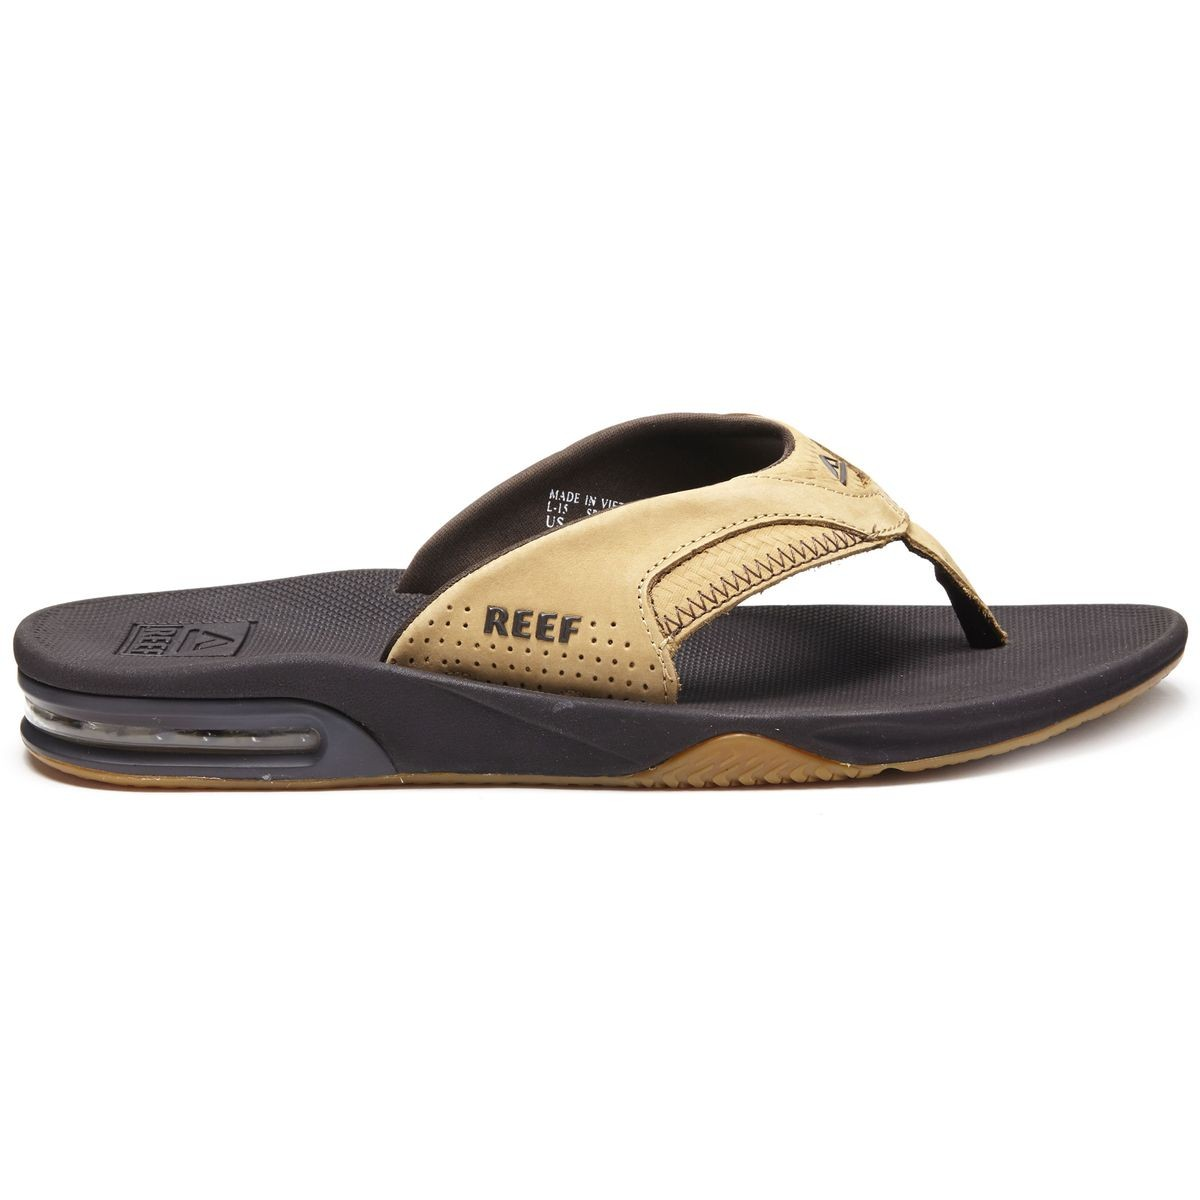 e5282ae235f5 Reef Leather Fanning Sandals - Tan Woven - 10.0